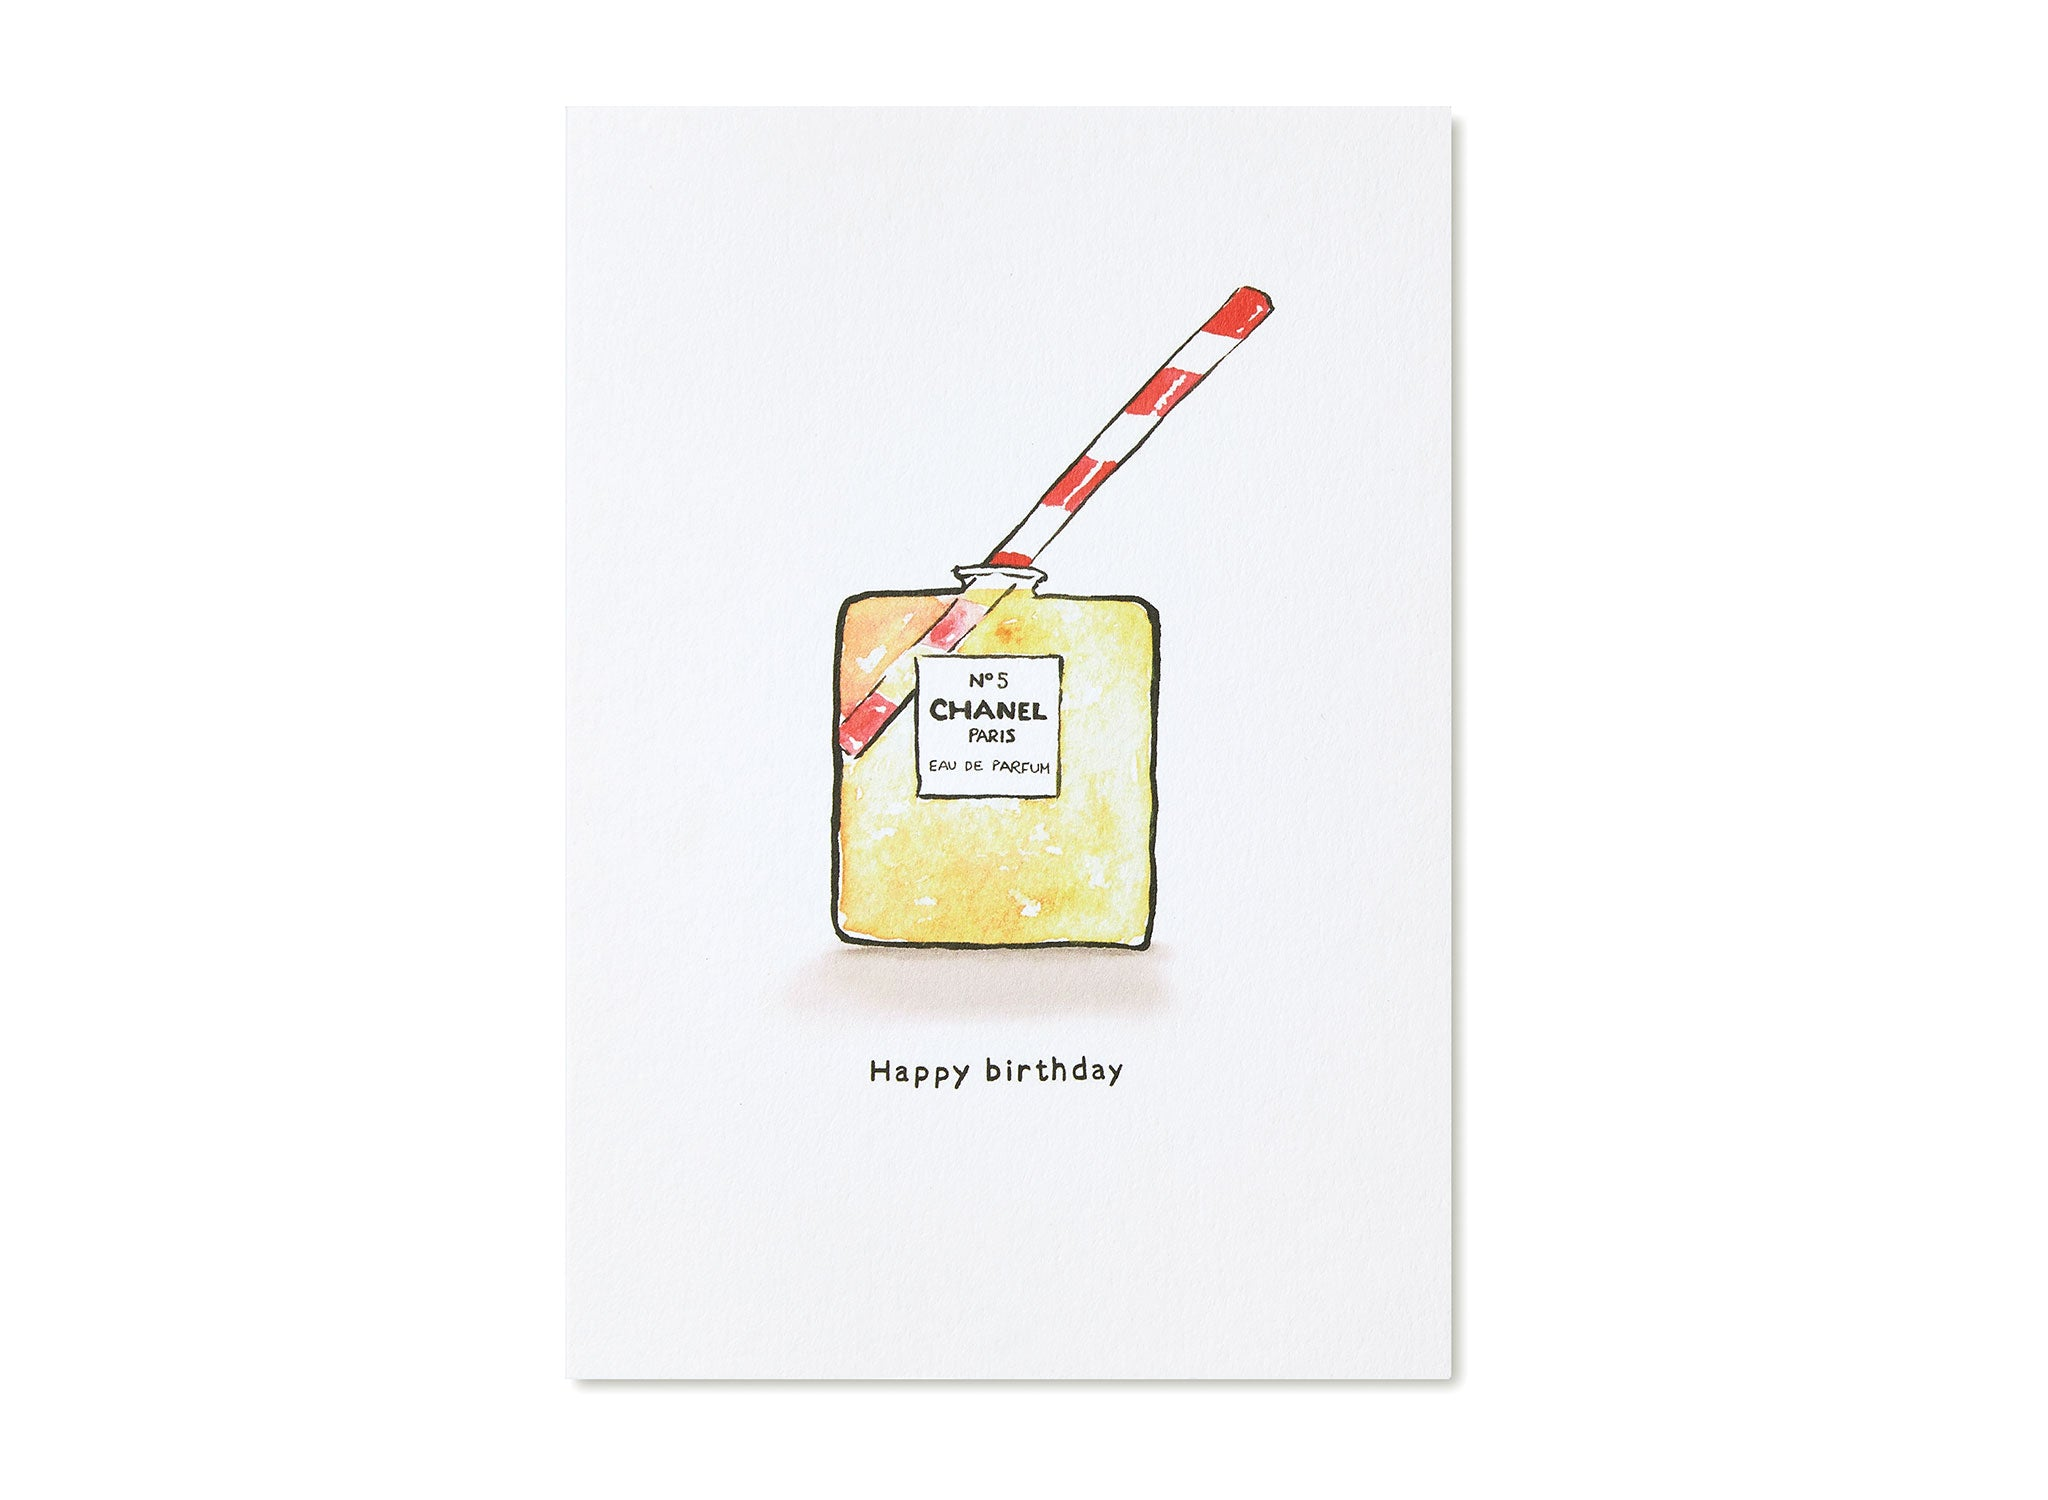 Jo Laing - Happy Birthday Greeting Card - luxury stationery made in England